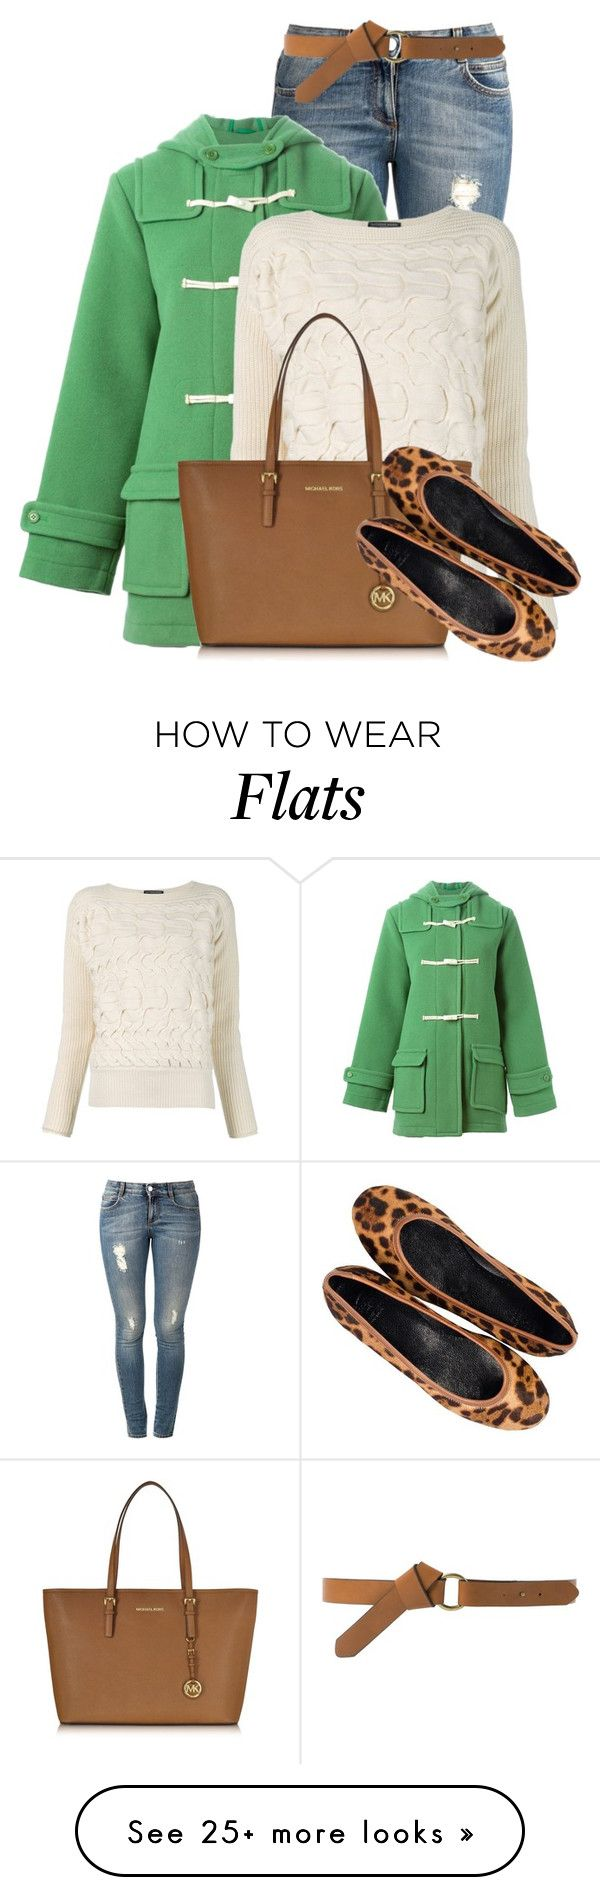 """""""Coats IV: Duffle"""" by lbite on Polyvore featuring STELLA McCARTNEY, YMC, MANGO, Alexander McQueen, Michael Kors, women's clothing, women, female, woman and misses"""